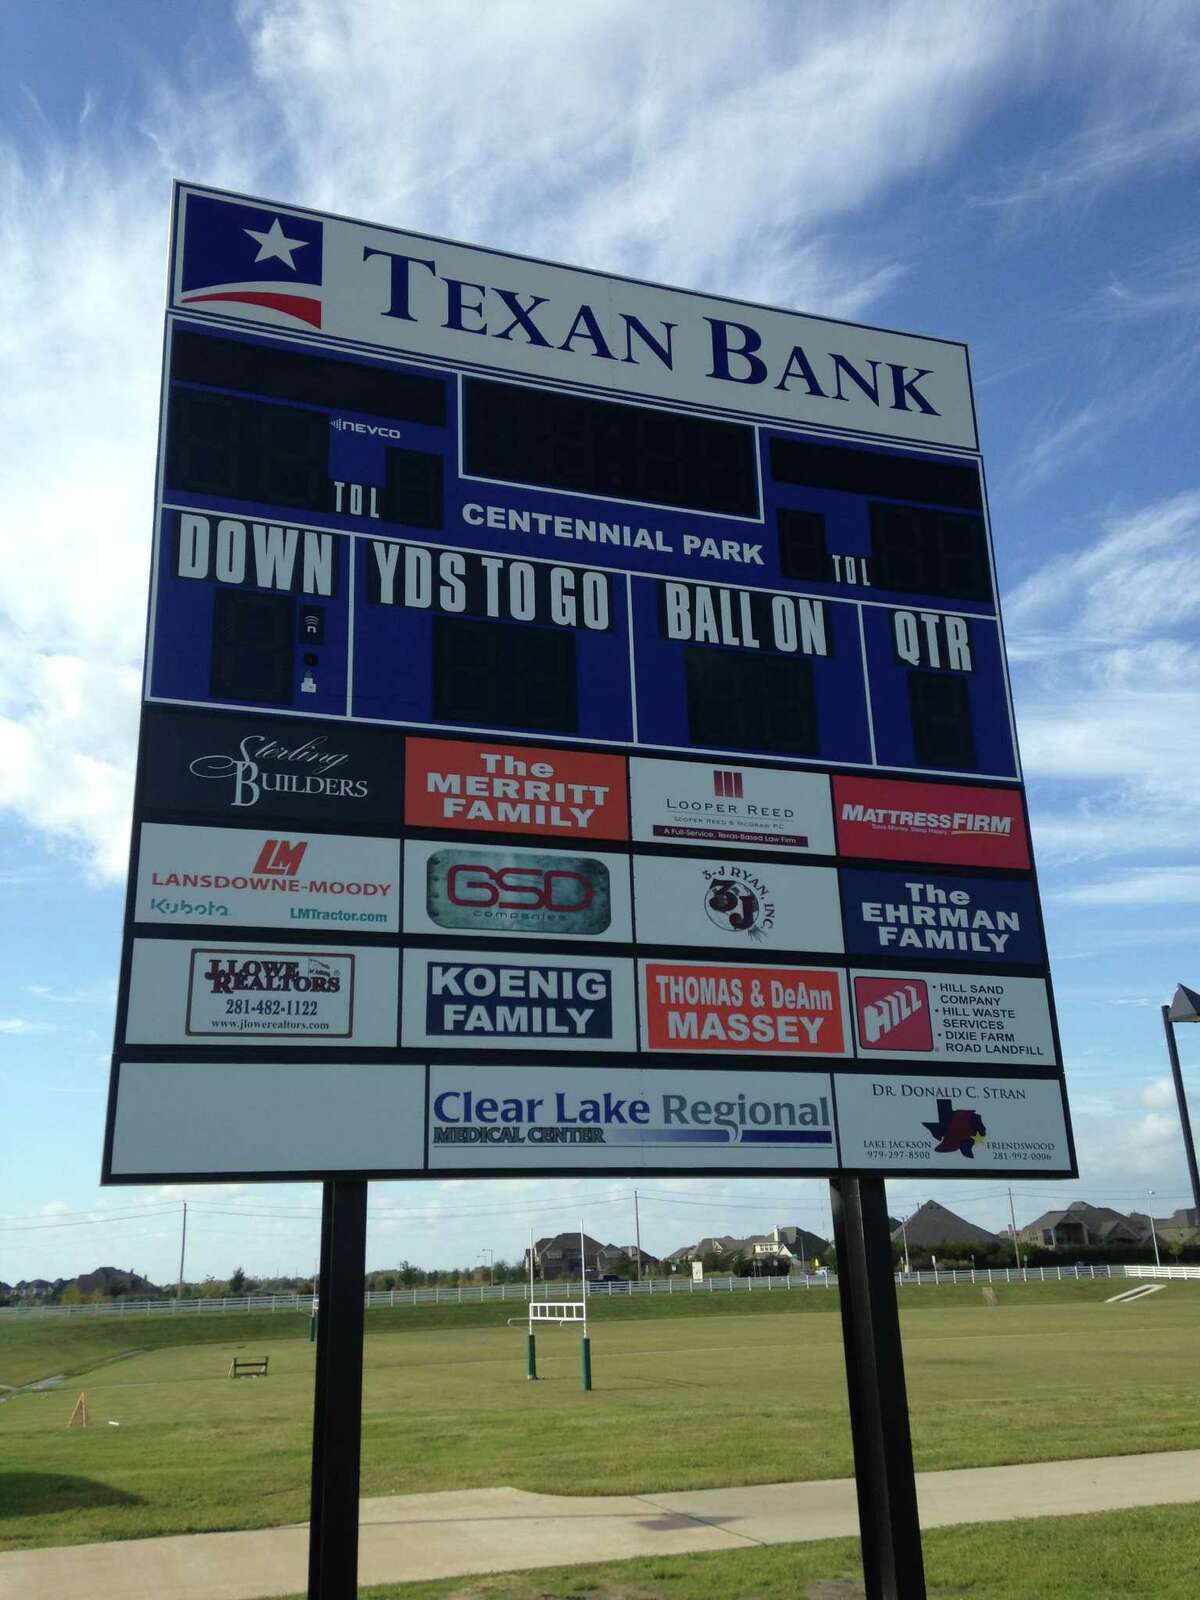 One of the two new scoreboards at Centennial Park in Friendswood.